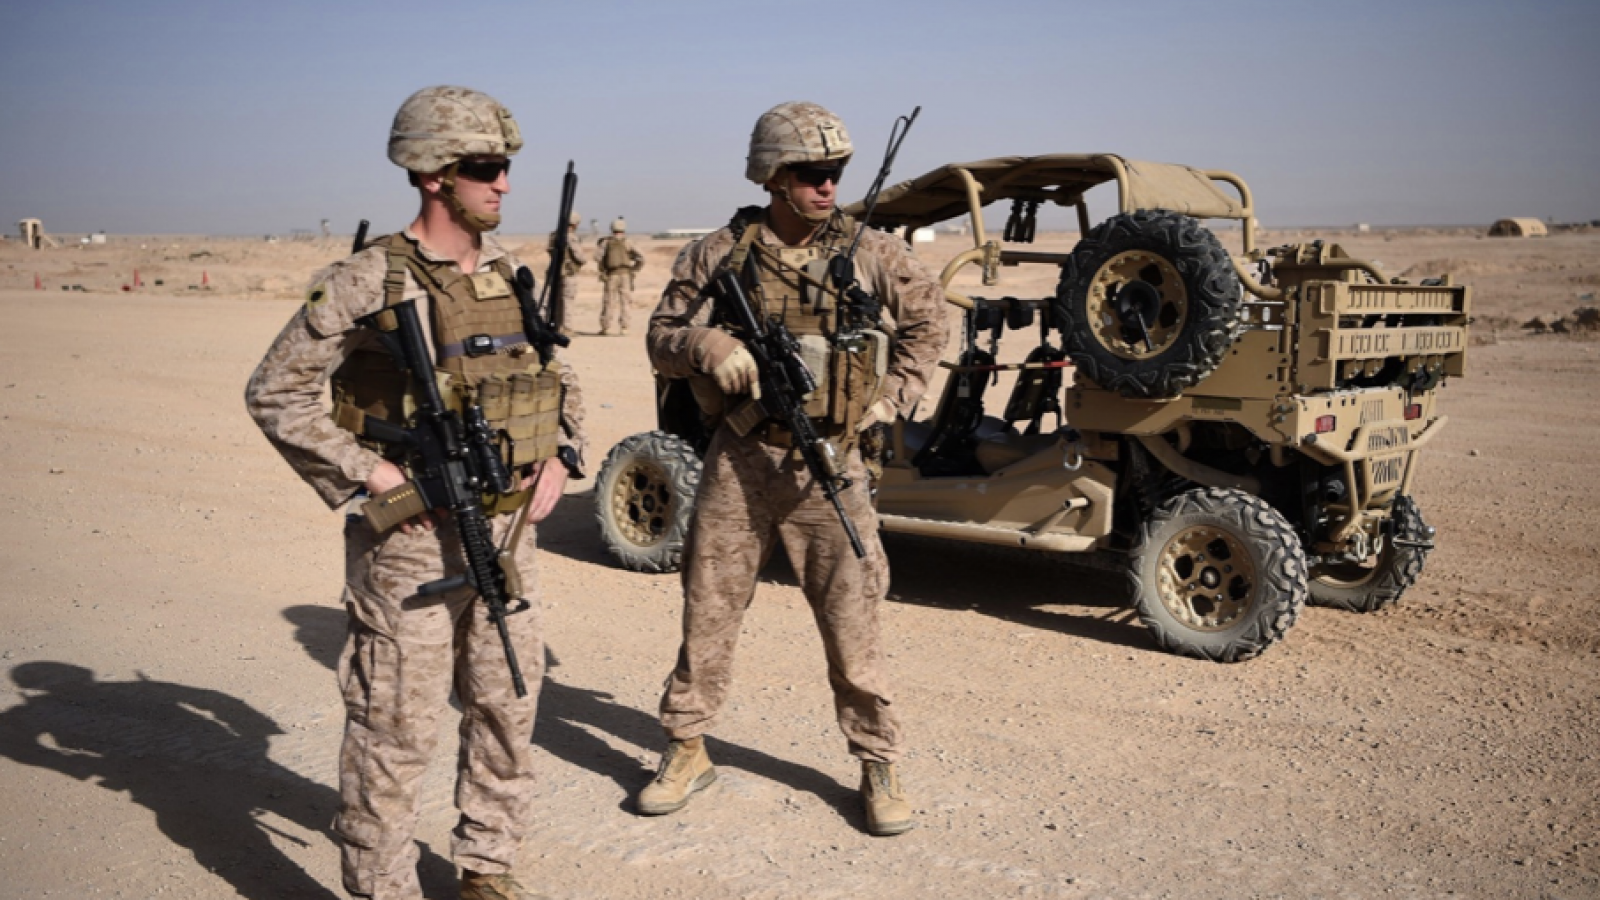 U.S. Marines keep watch as unseen Afghan National Army soldiers participate in an improvised explosive device training exercise in Lashkar Gah in the Afghan province of Helmand on Aug. 28, 2017.